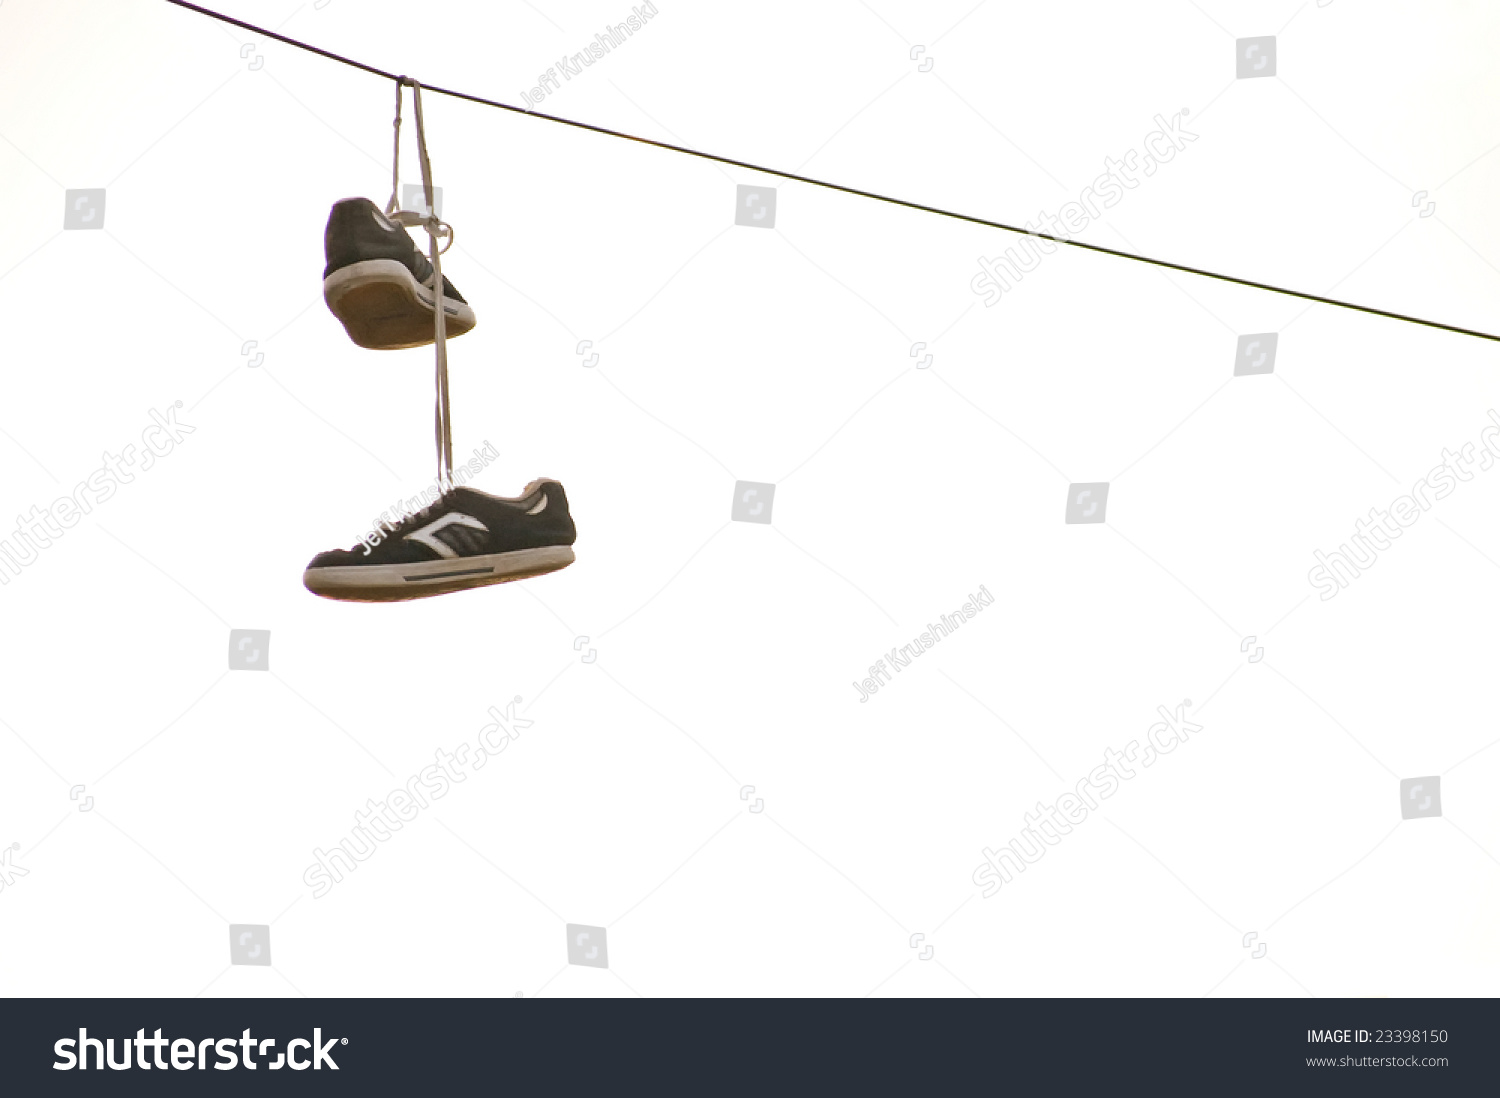 Hanging Pictures On Wire sneakers hanging on wire stock photo 23398150 - shutterstock